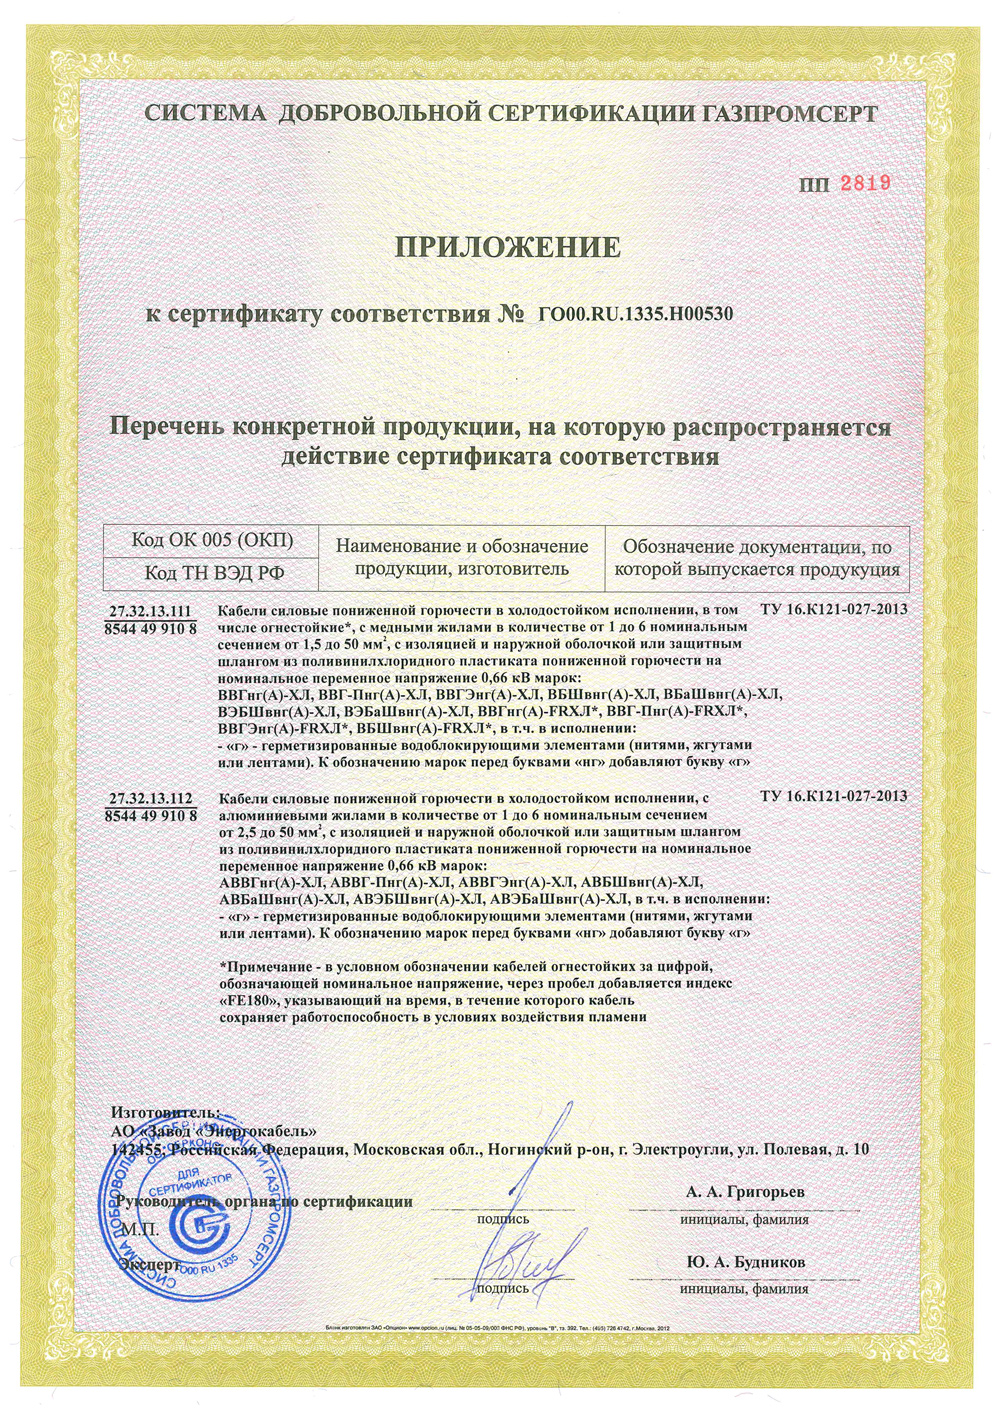 The appendix №1 to the Certificate of Conformity № ГО00.RU.1335.Н00530.